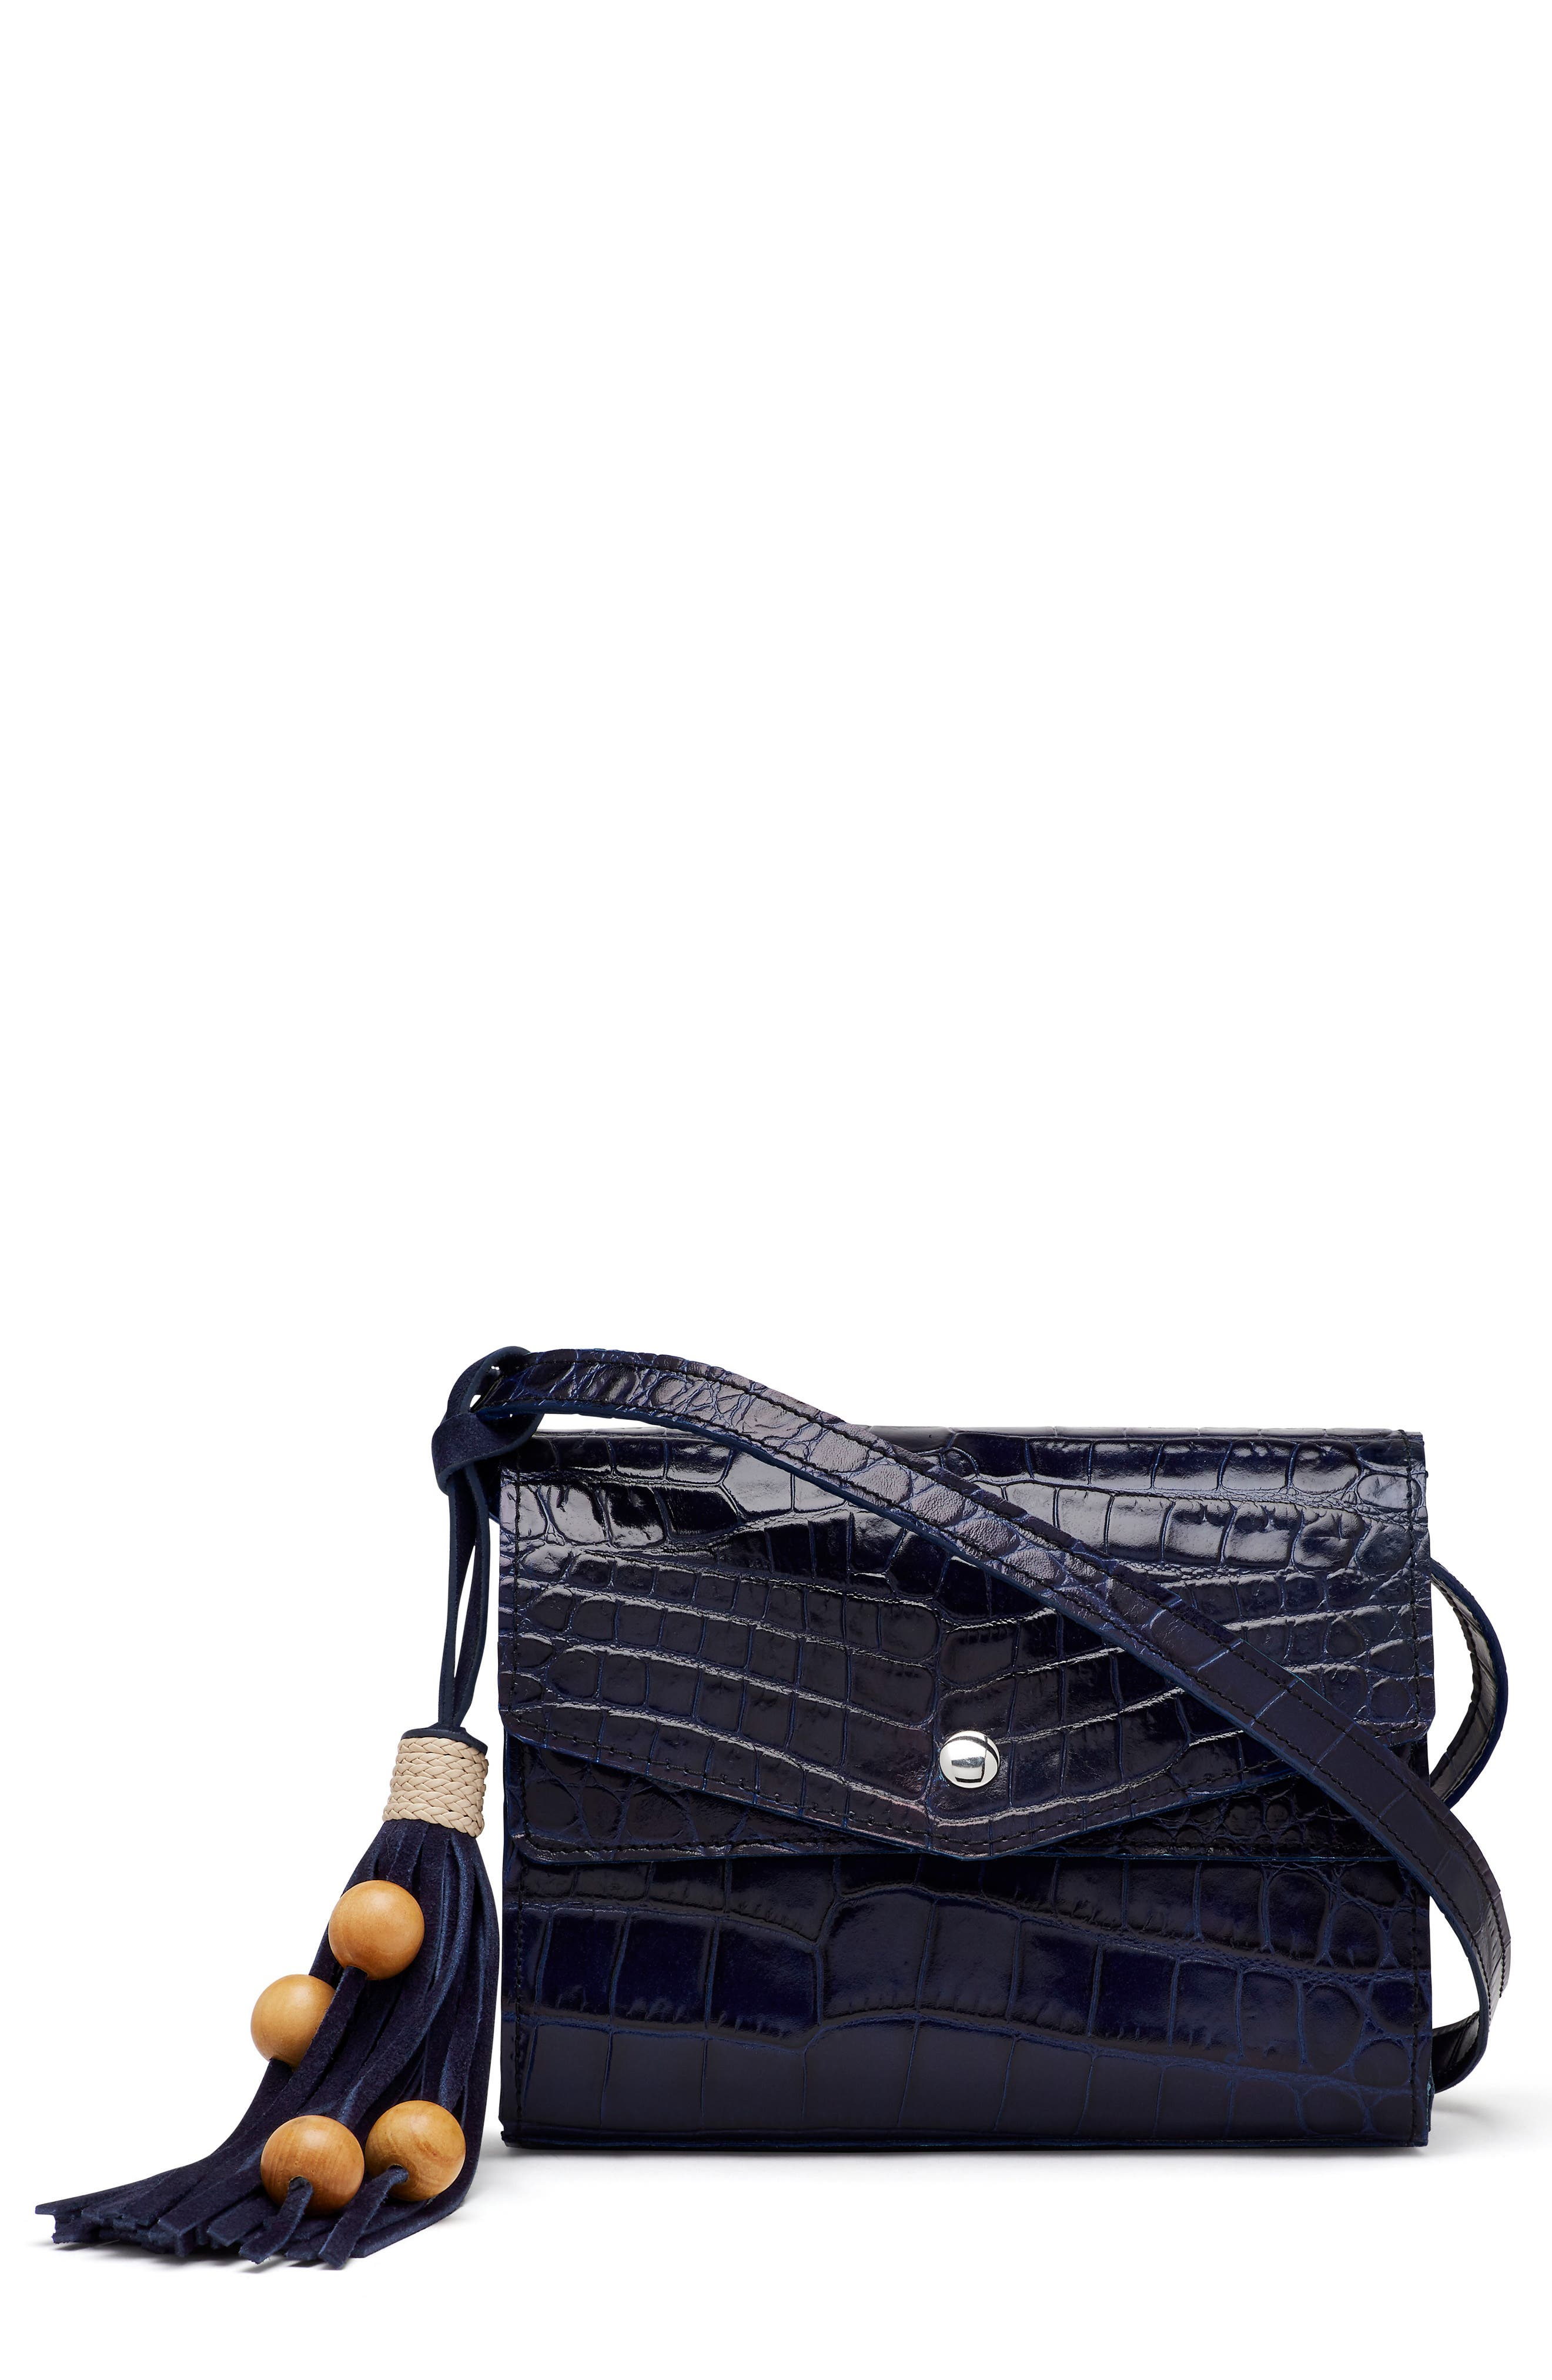 Alternate Image 1 Selected - Elizabeth and James Eloise Field Leather Crossbody Bag